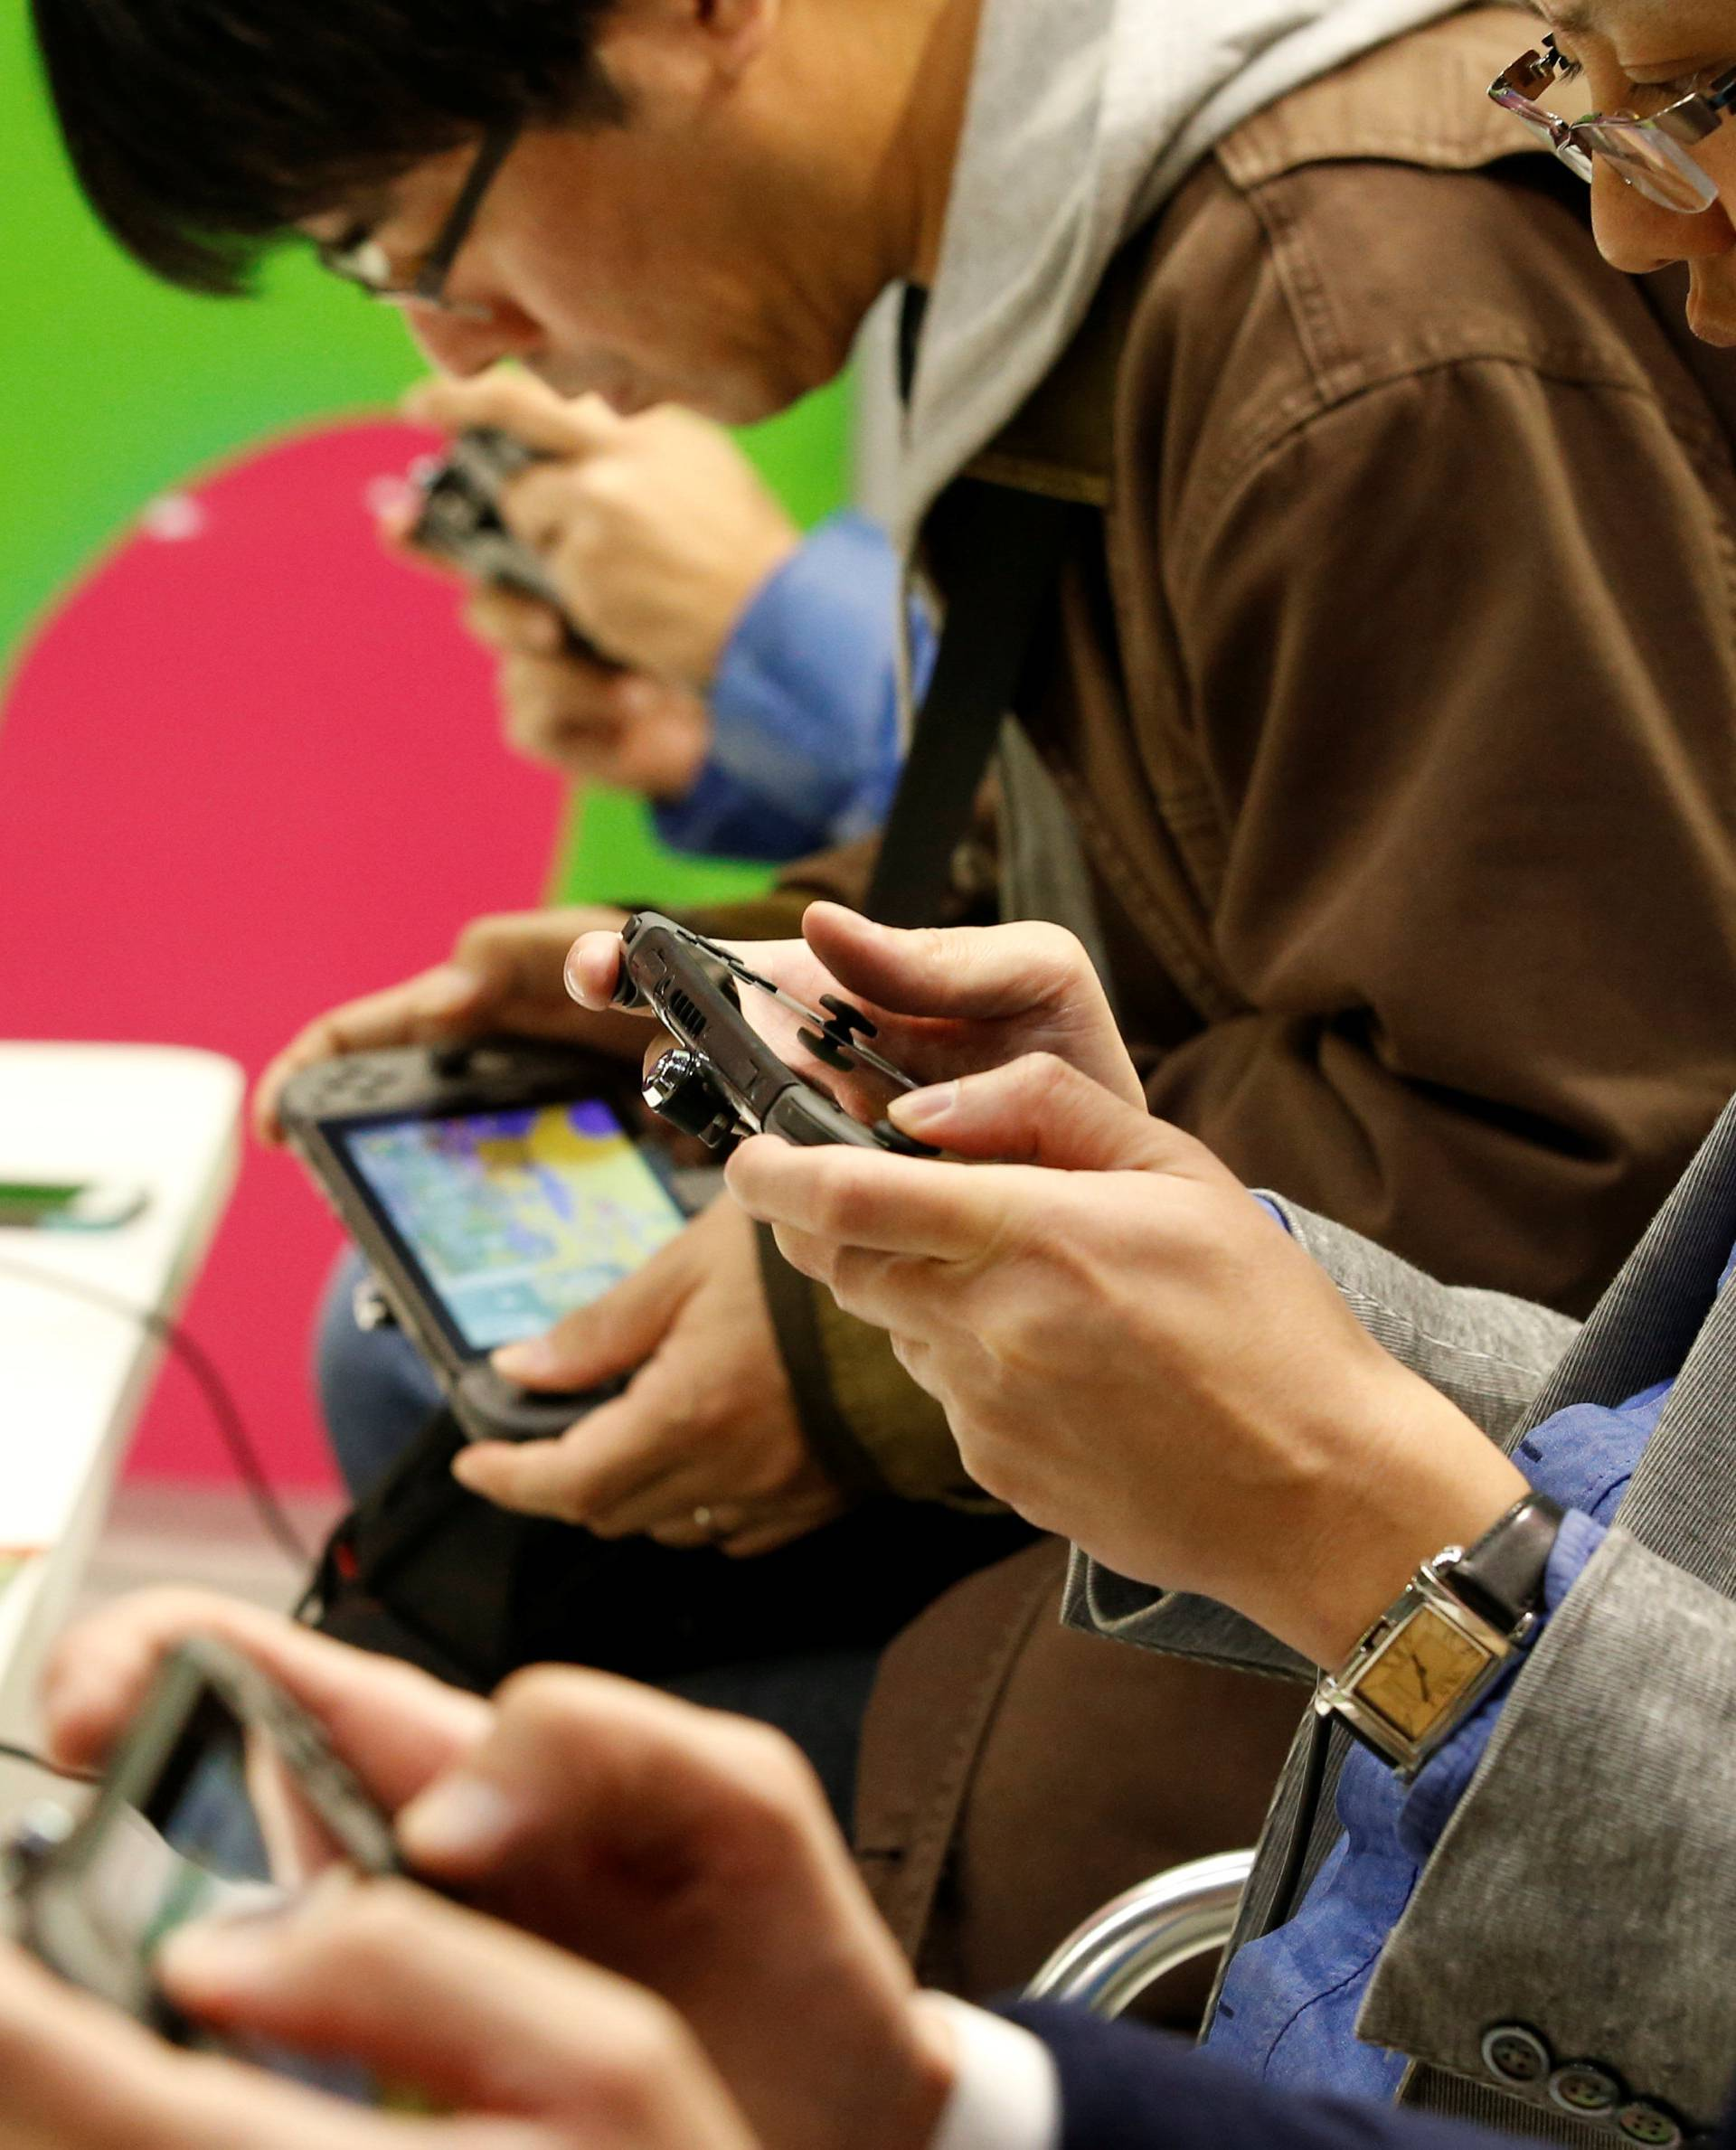 People play Nintendo's new game console Switch at its experience venue in Tokyo